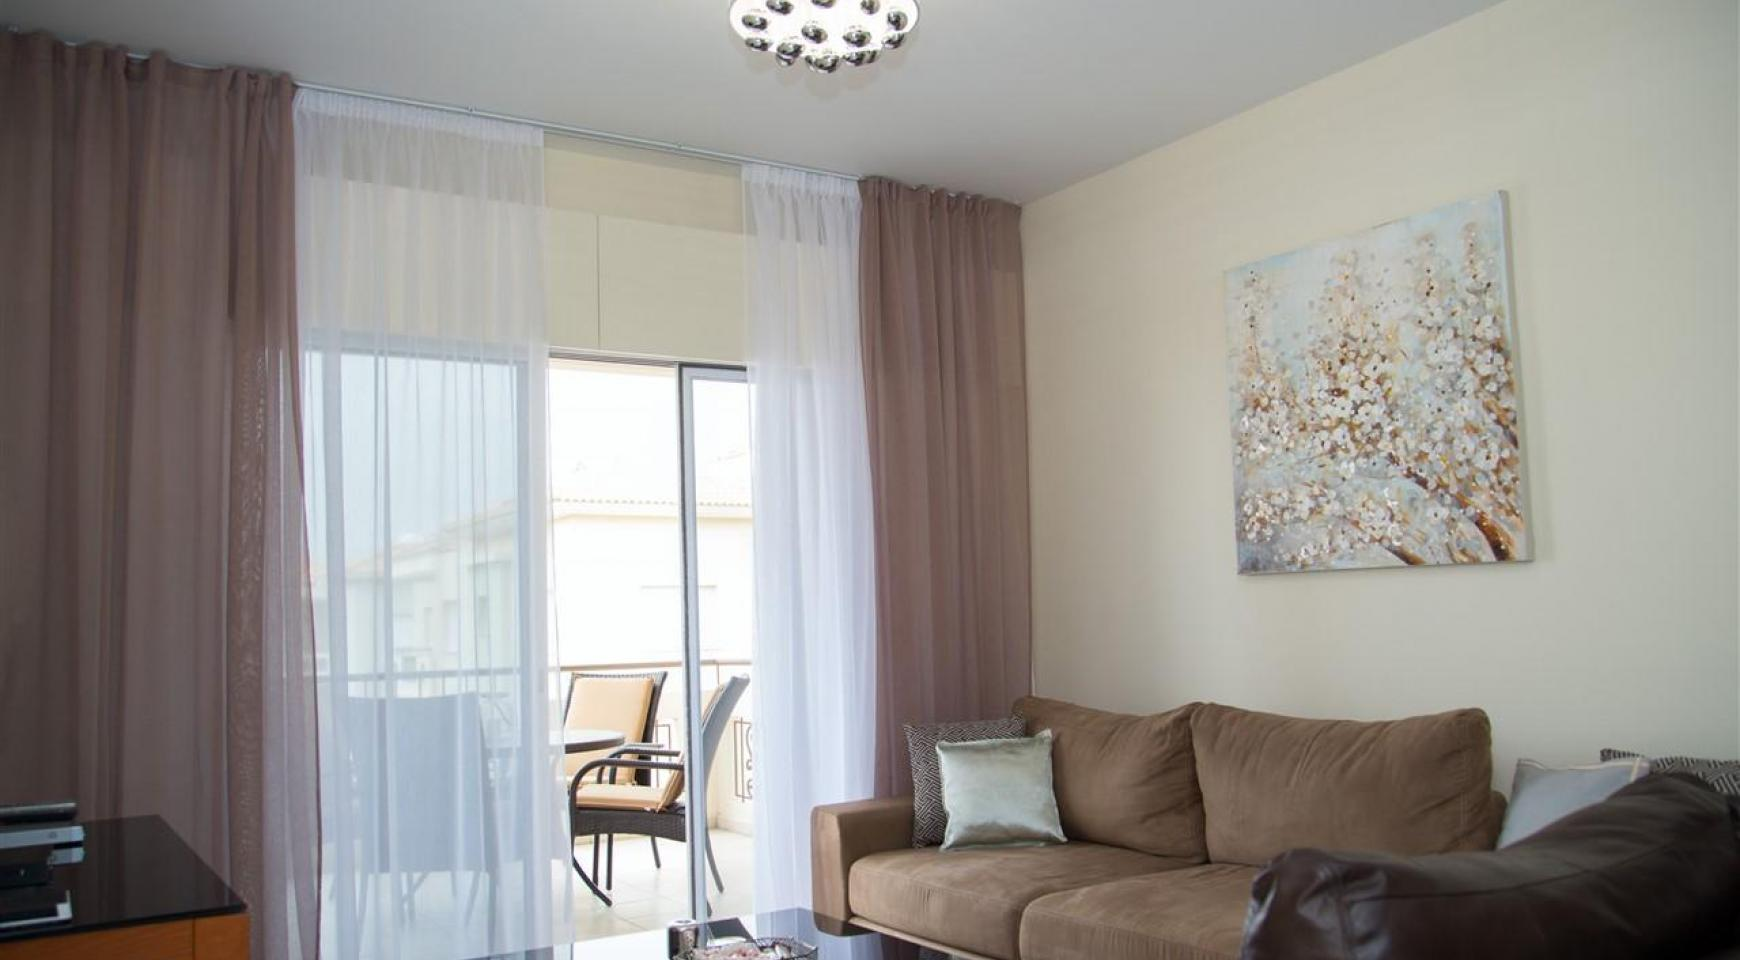 2 Bedroom Apartment Mesogios Iris 304 in the Complex near the Sea - 5